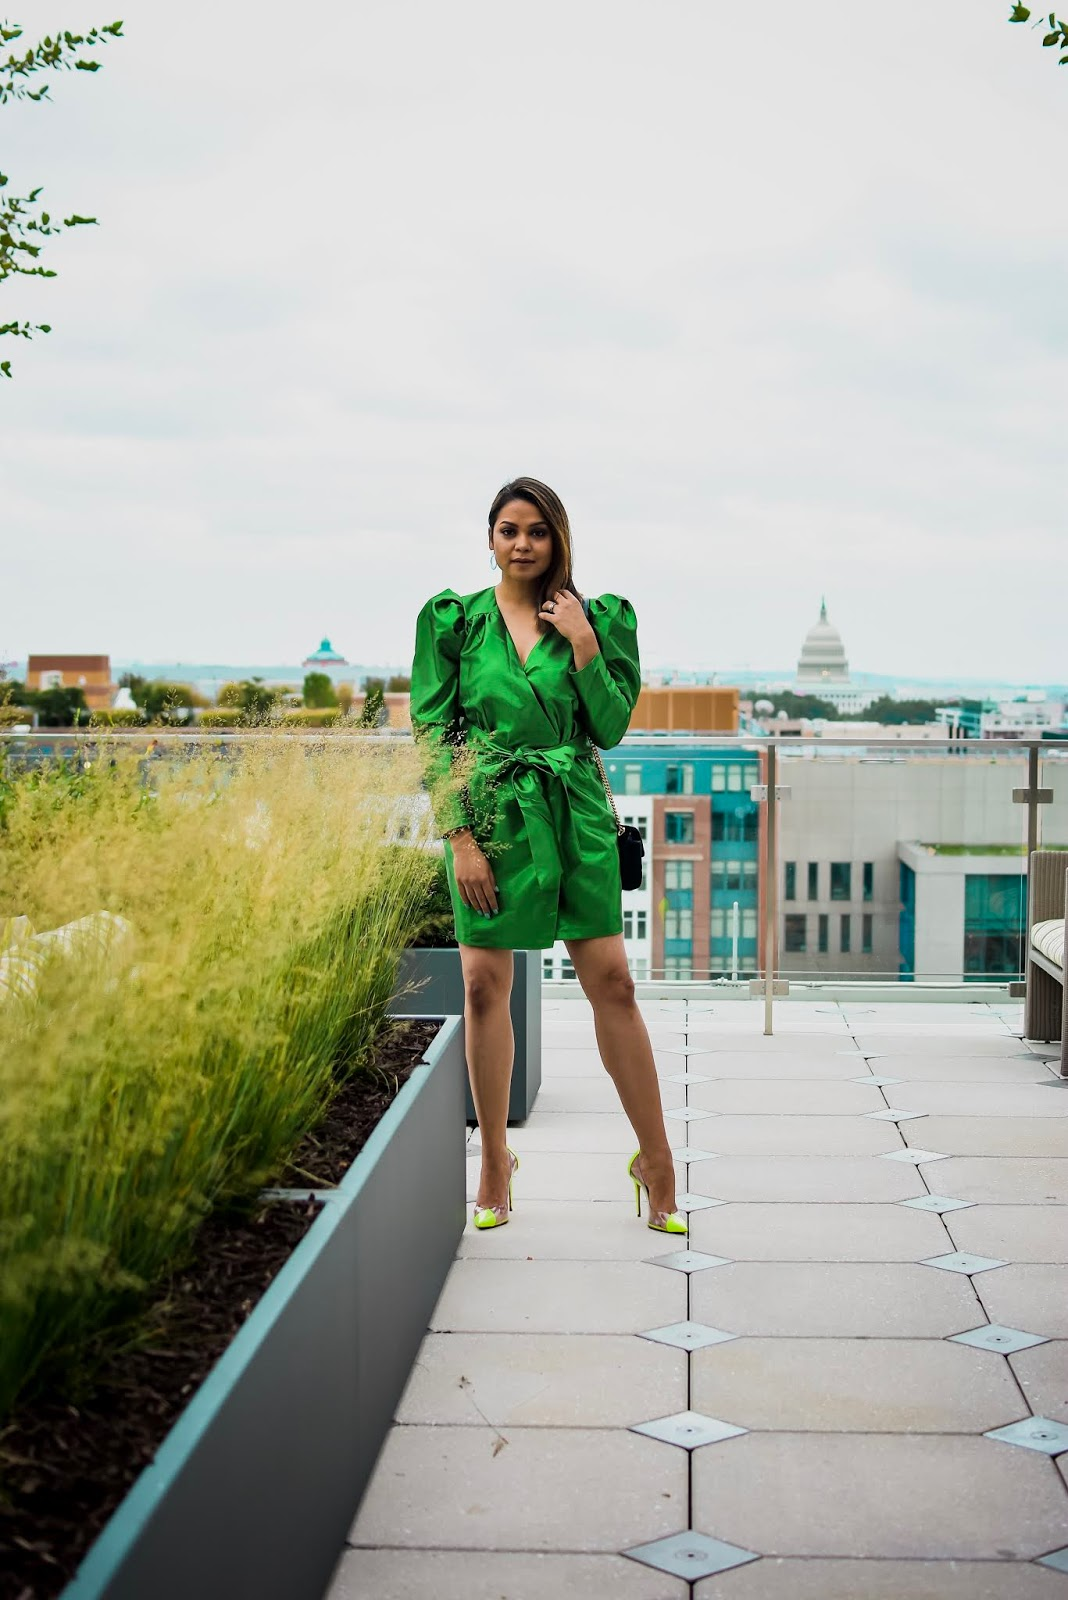 color trends for fall, fall fashion, colors for fall, green and neon, happyxnature green dress, party outfit, power shoulders, mini dress for new year, saumya shiohare, myriad musings